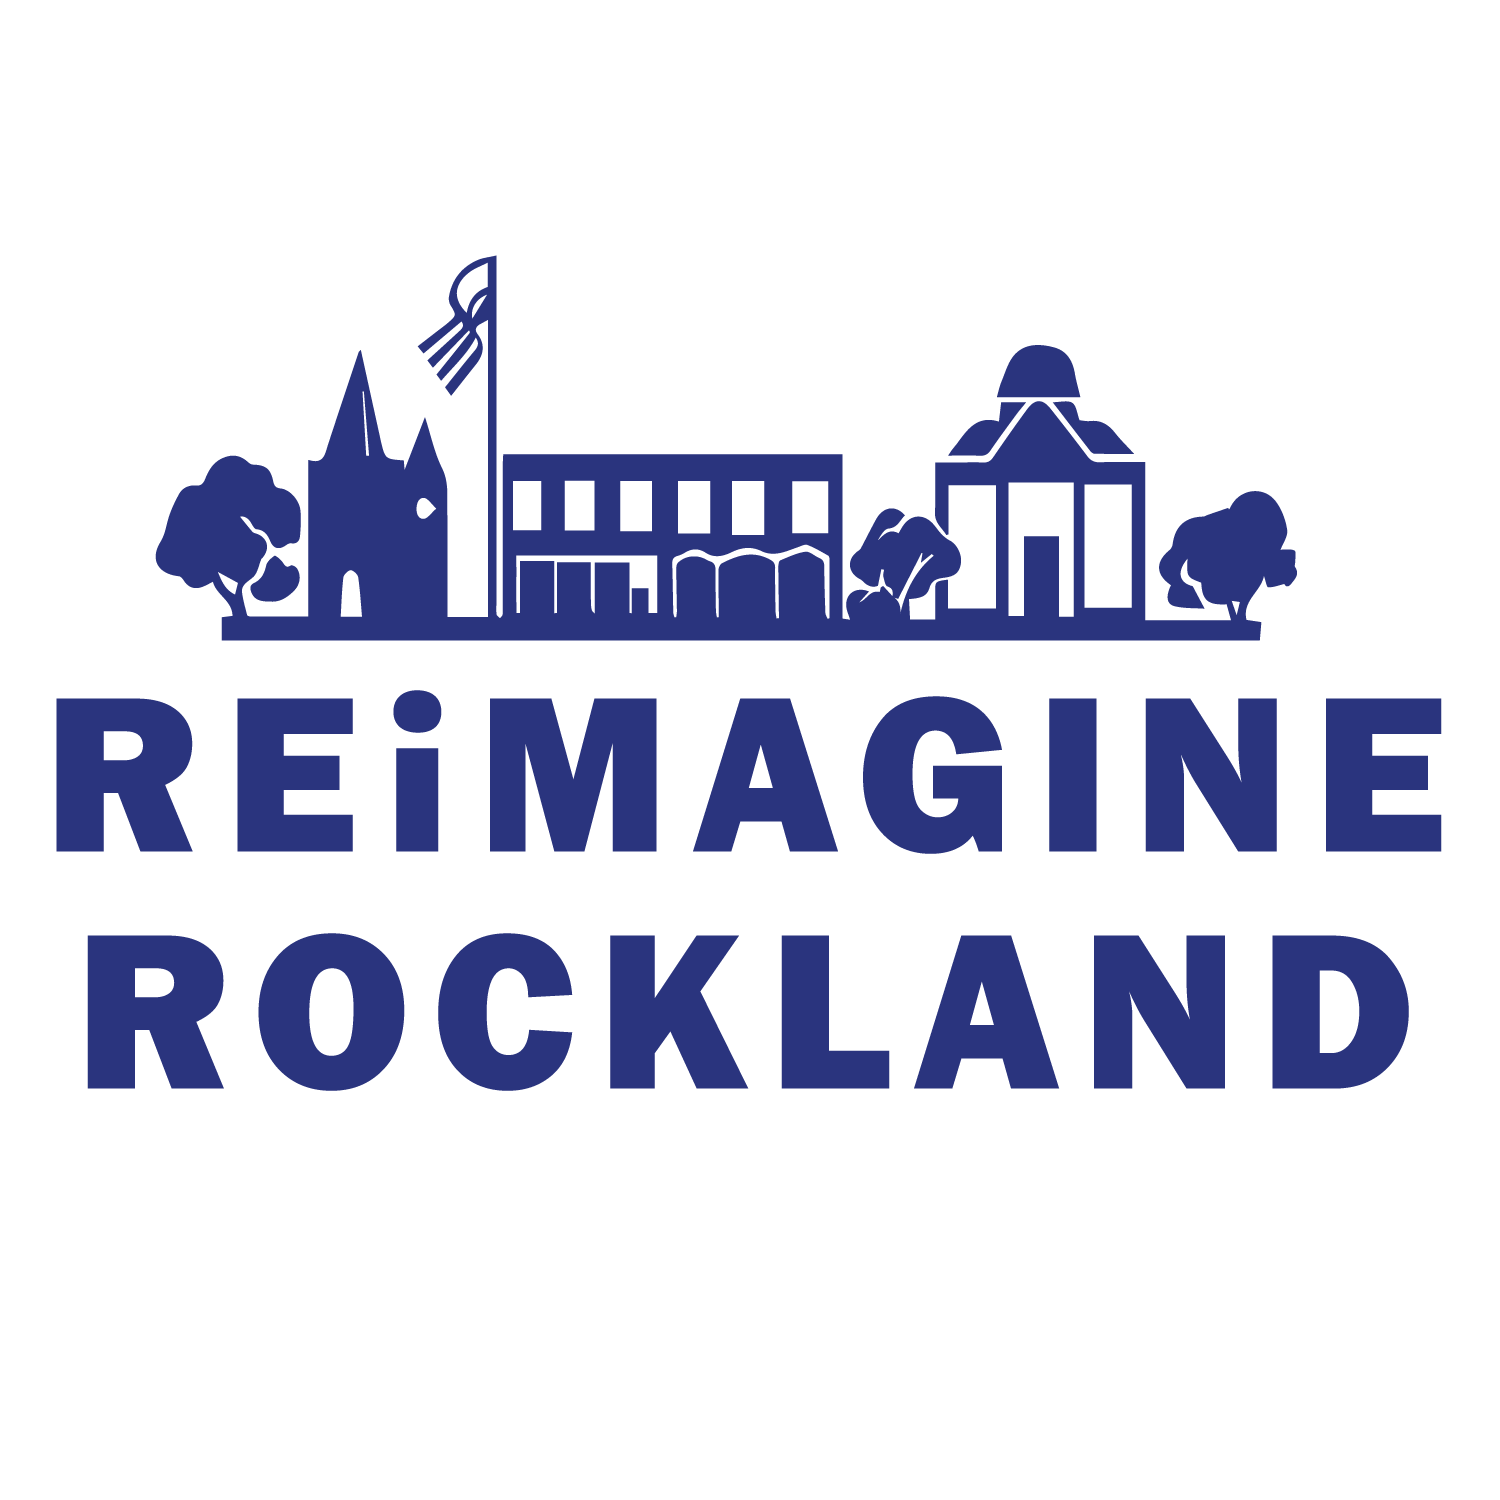 RR-logo-w-clear-background_MKM.png